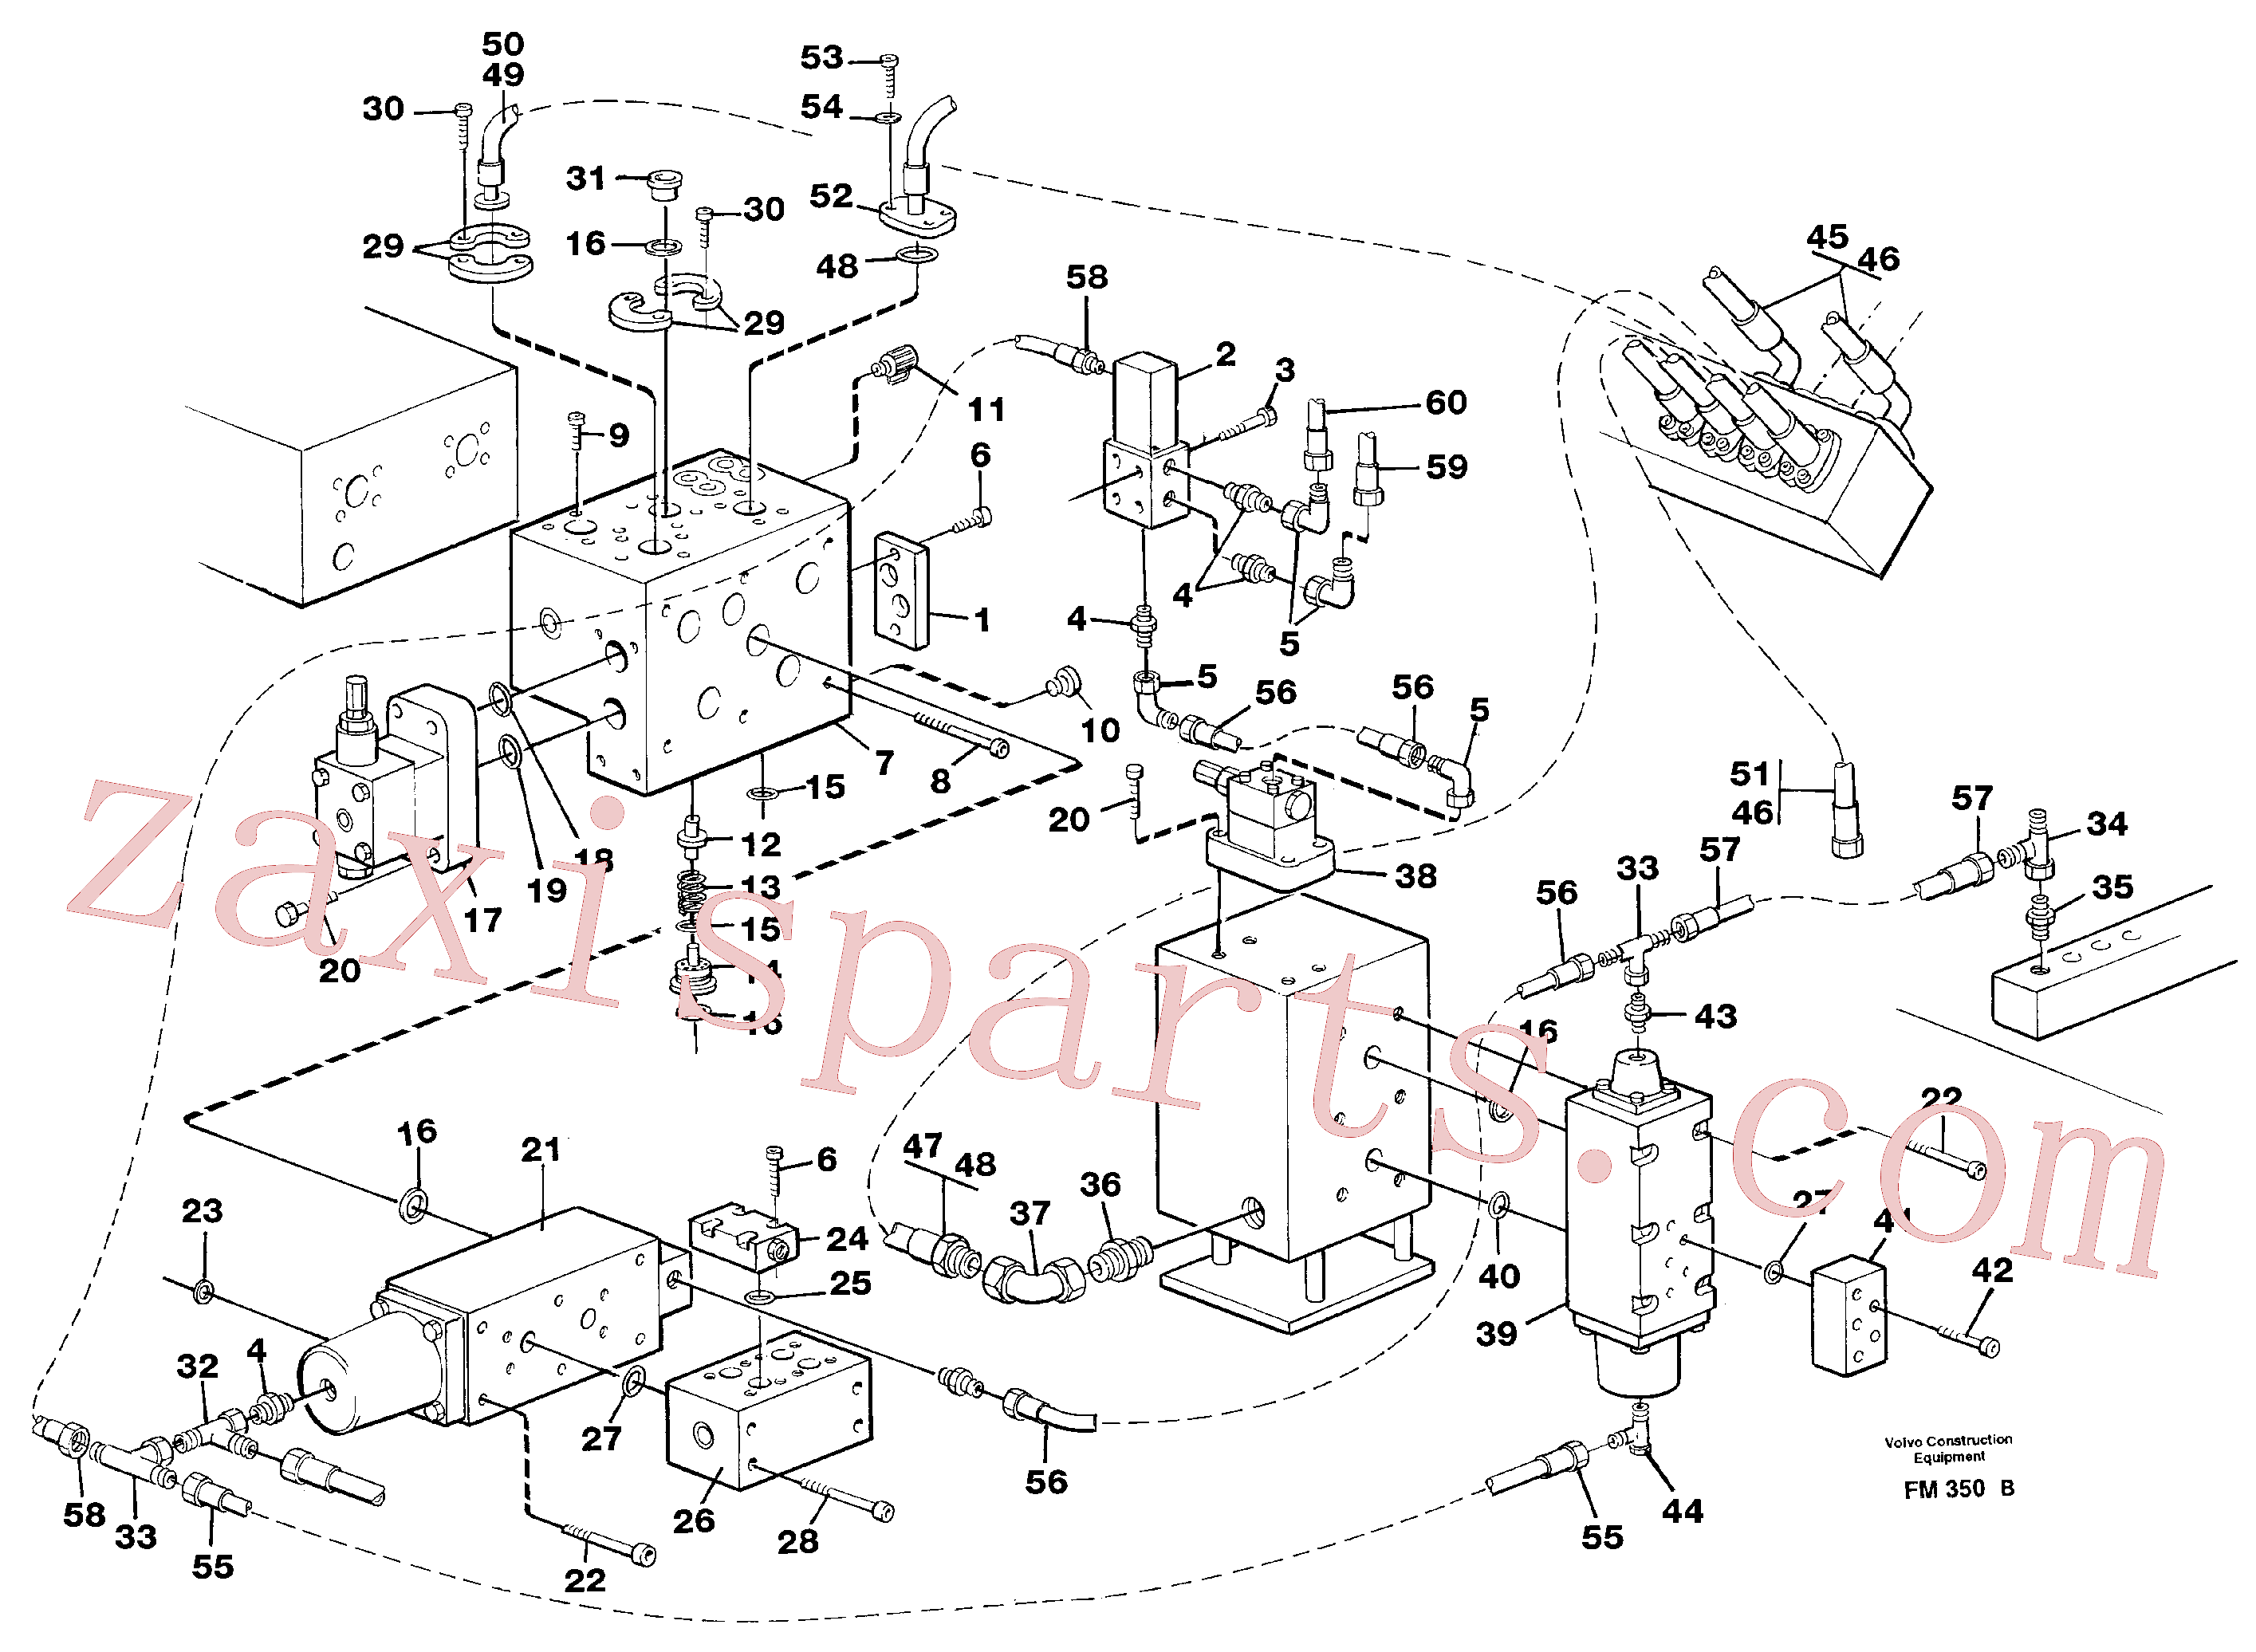 VOE14265516 for Volvo Hammer hydraulics on base machine(FM350B assembly)